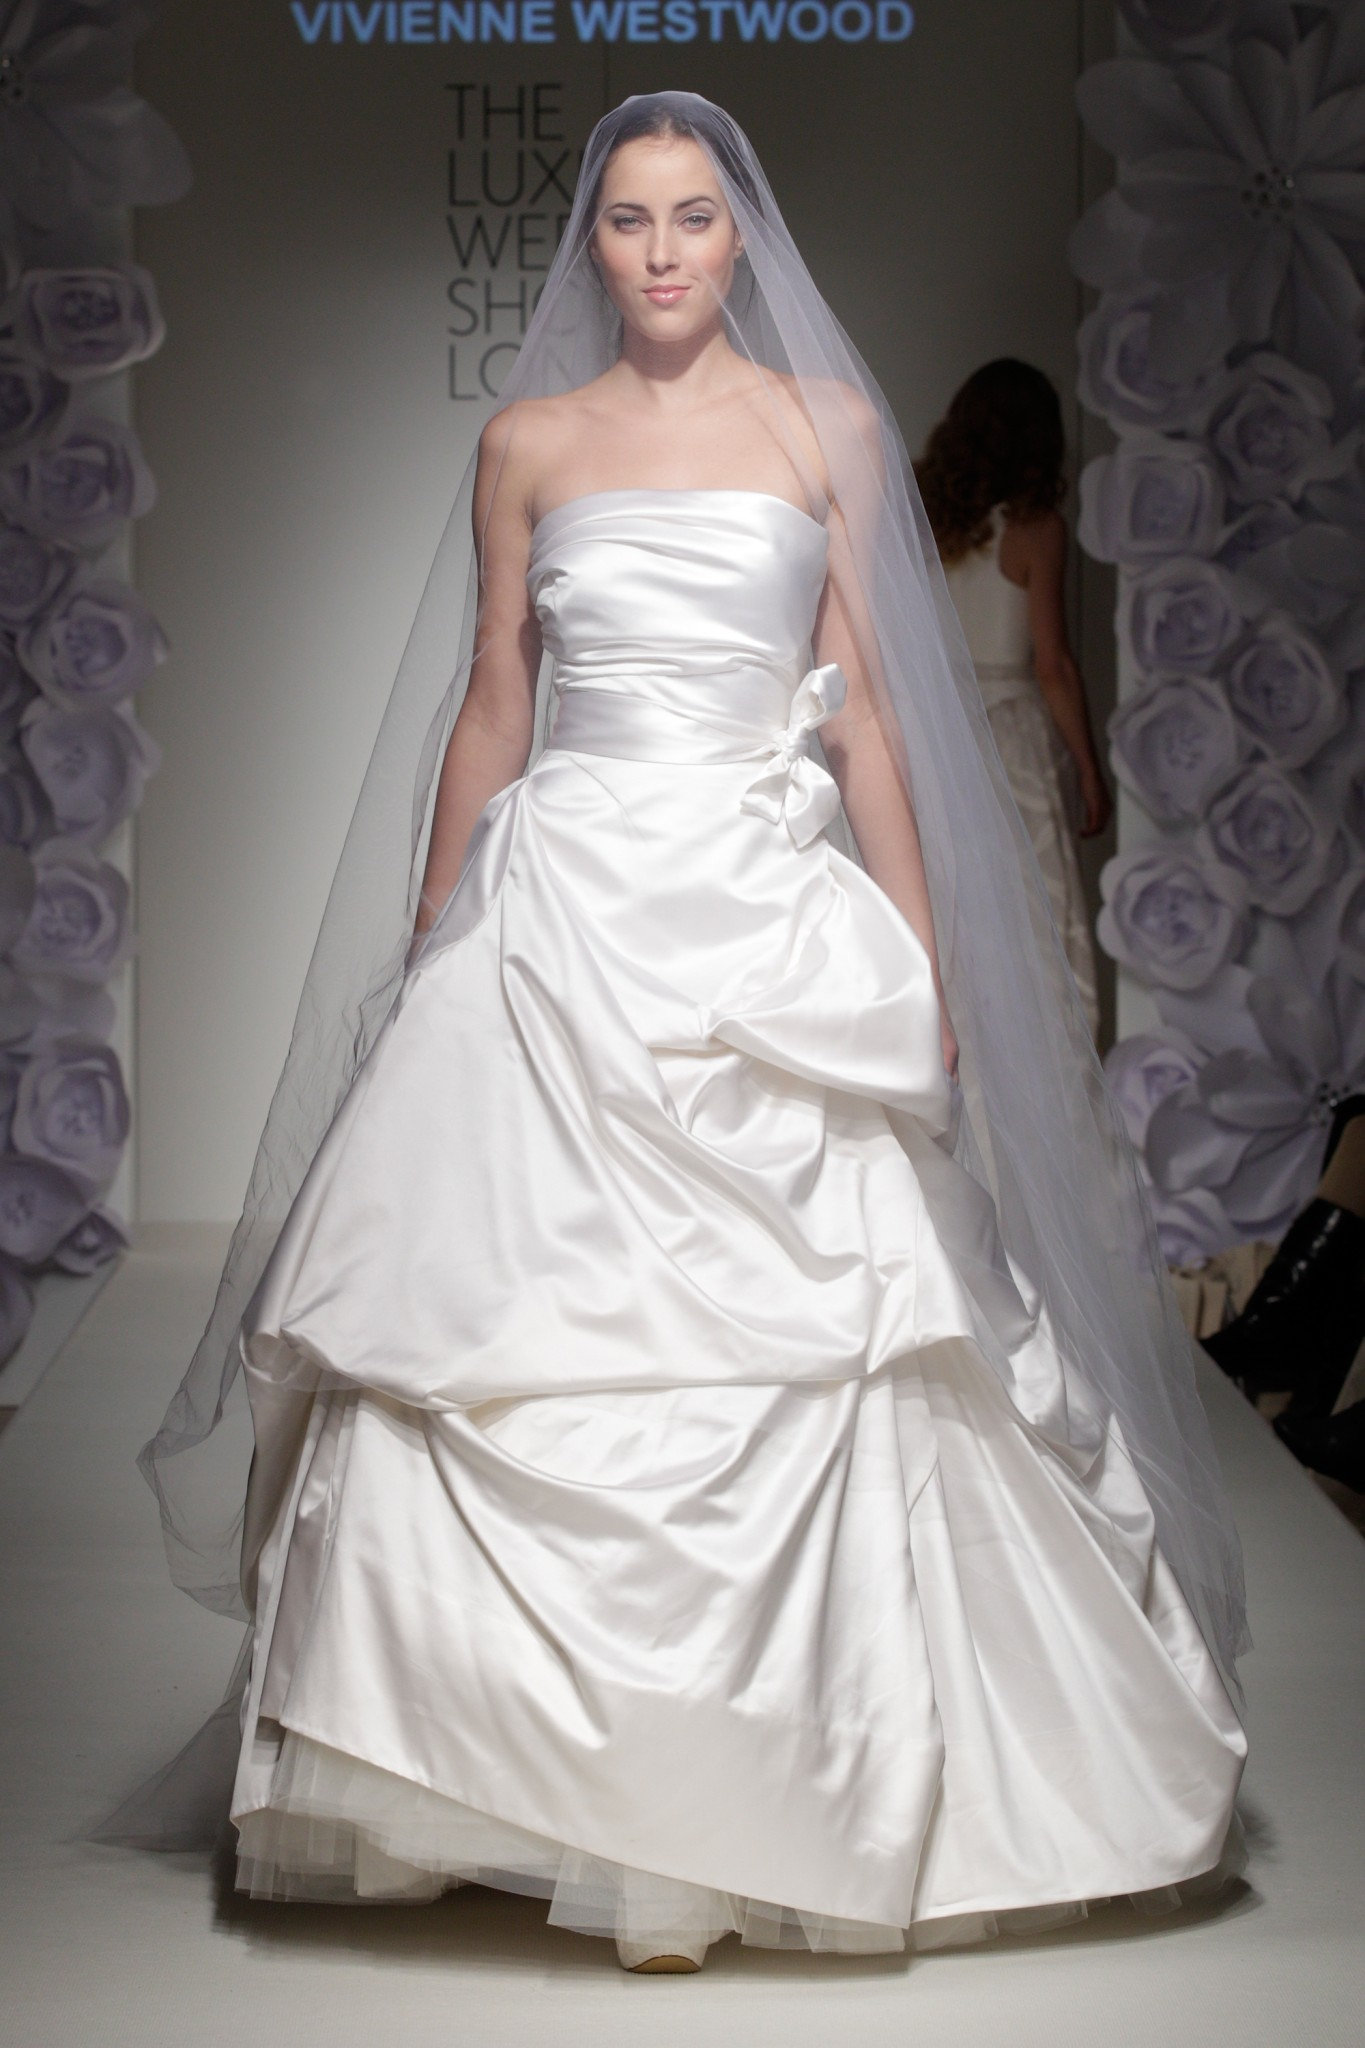 vivienne-westwood-bridal - The Wedding Dolls